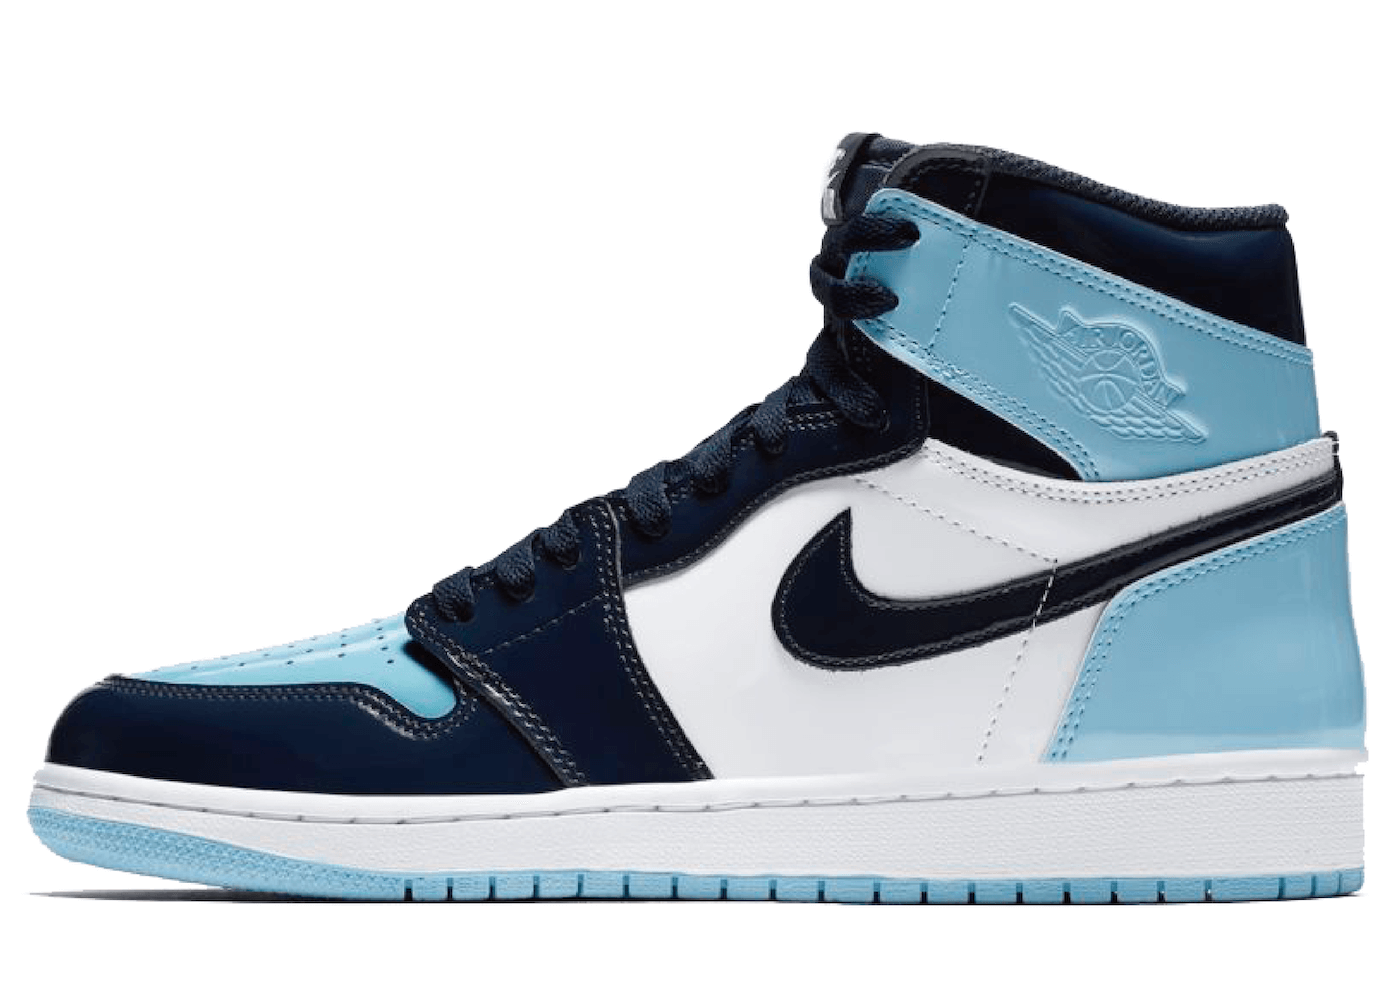 Nike Air Jordan 1 Retro High UNC Patent Womensの写真